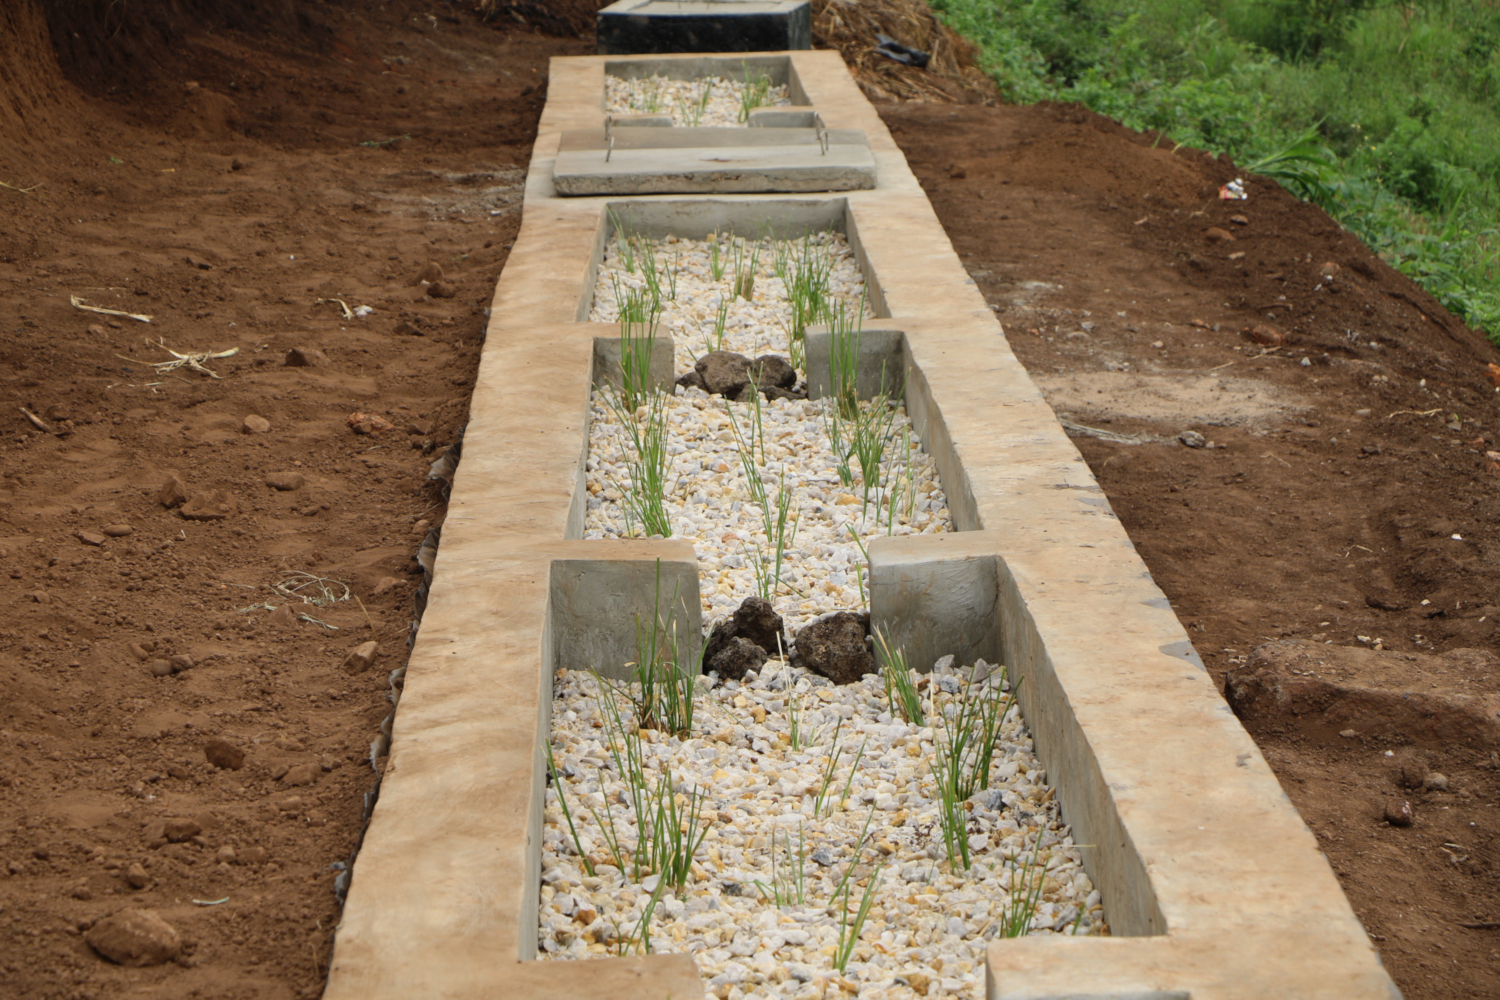 A tri-dimensional waster water at Nyarugenge Prison treats, recycles and re-uses the waste water generated from the prison, helping to protect the surrounding environment. The resulting effluent is used for irrigation of the Community Sanitation Garden (CSG) to improve agricultural productivity of the prison in dry and rainy seasons. (credits: LVEMP II Rwanda / Flickr Creative Commons Attribution 2.0 Generic (CC BY 2.0))